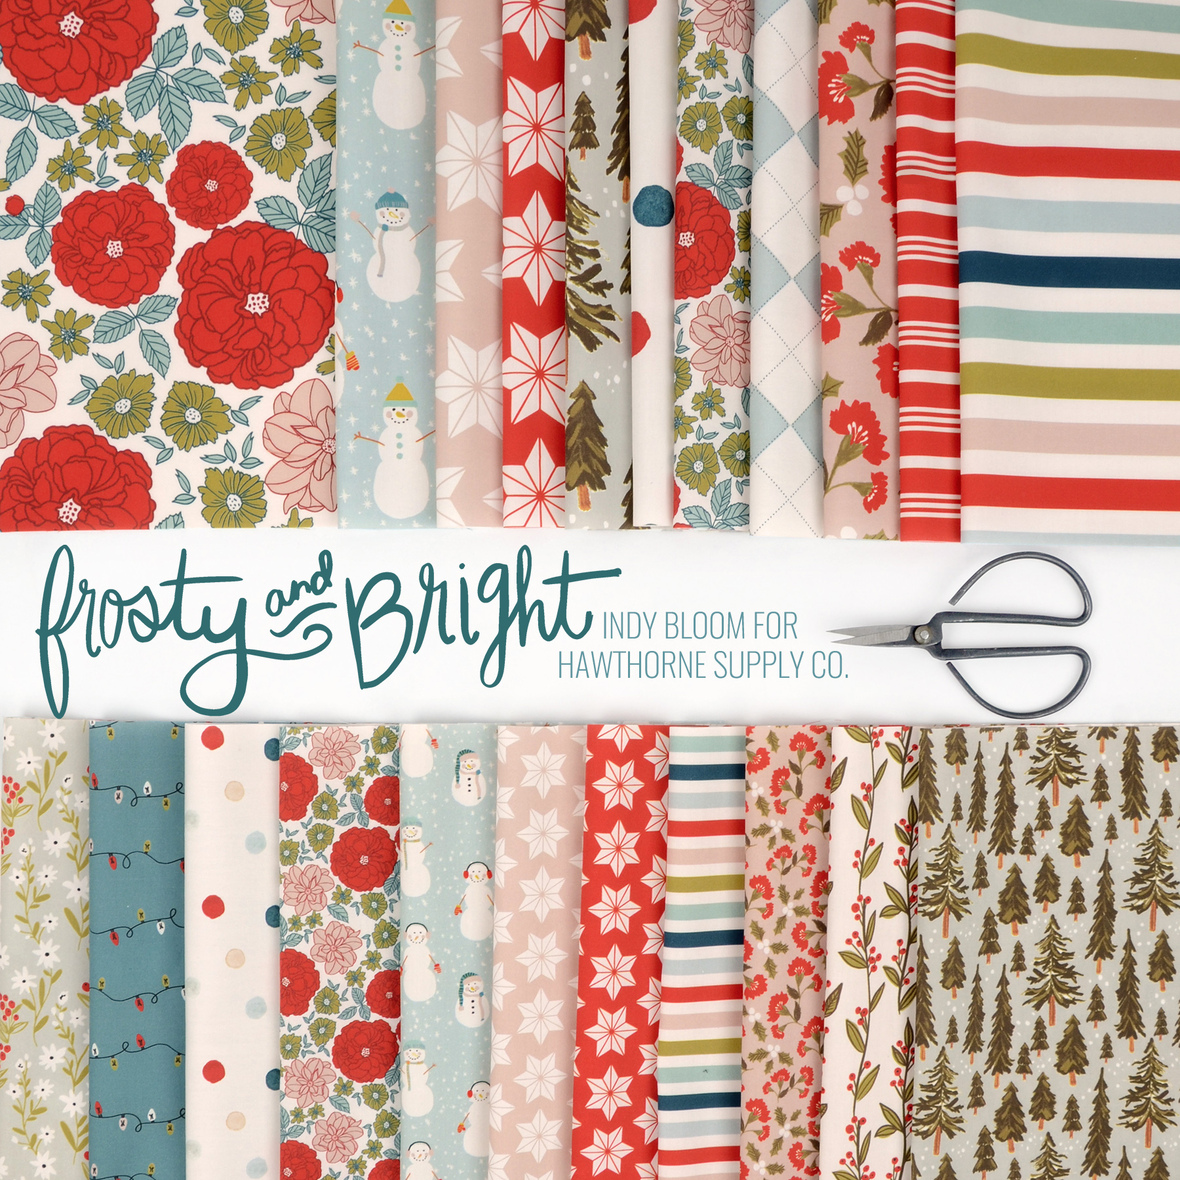 Frosty and Bright fabric Indy Bloom for Hawthorne Supply Co b